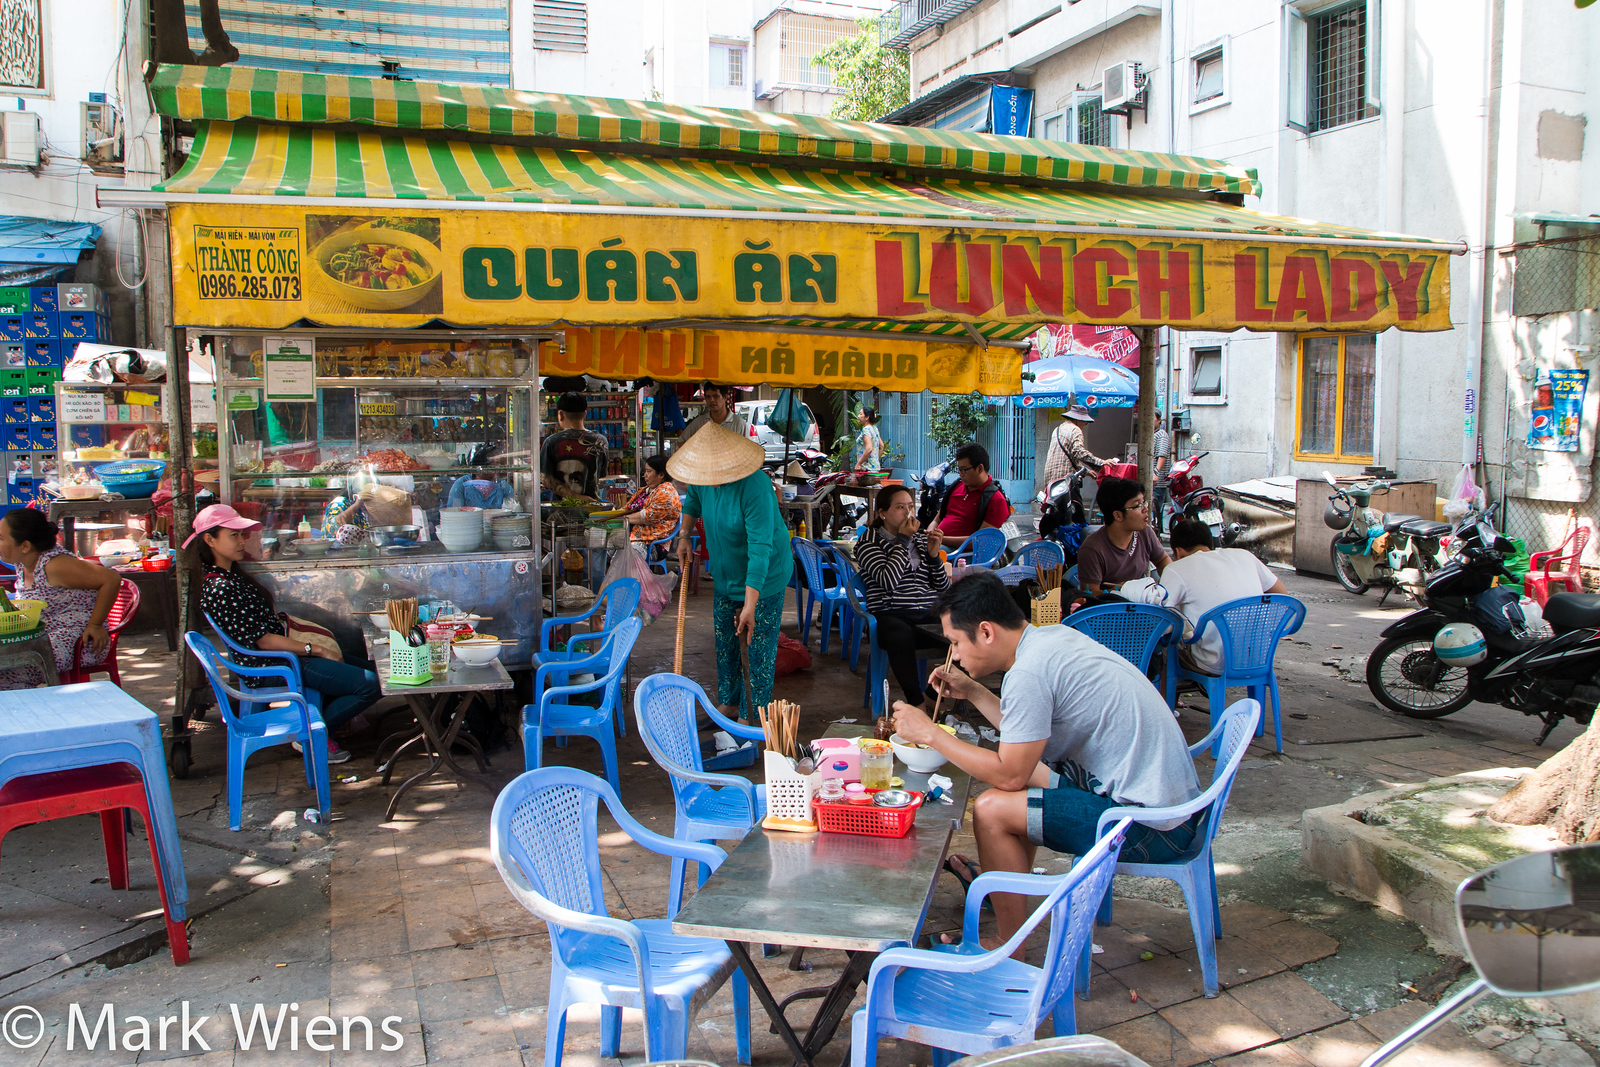 The Lunch Lady in Saigon